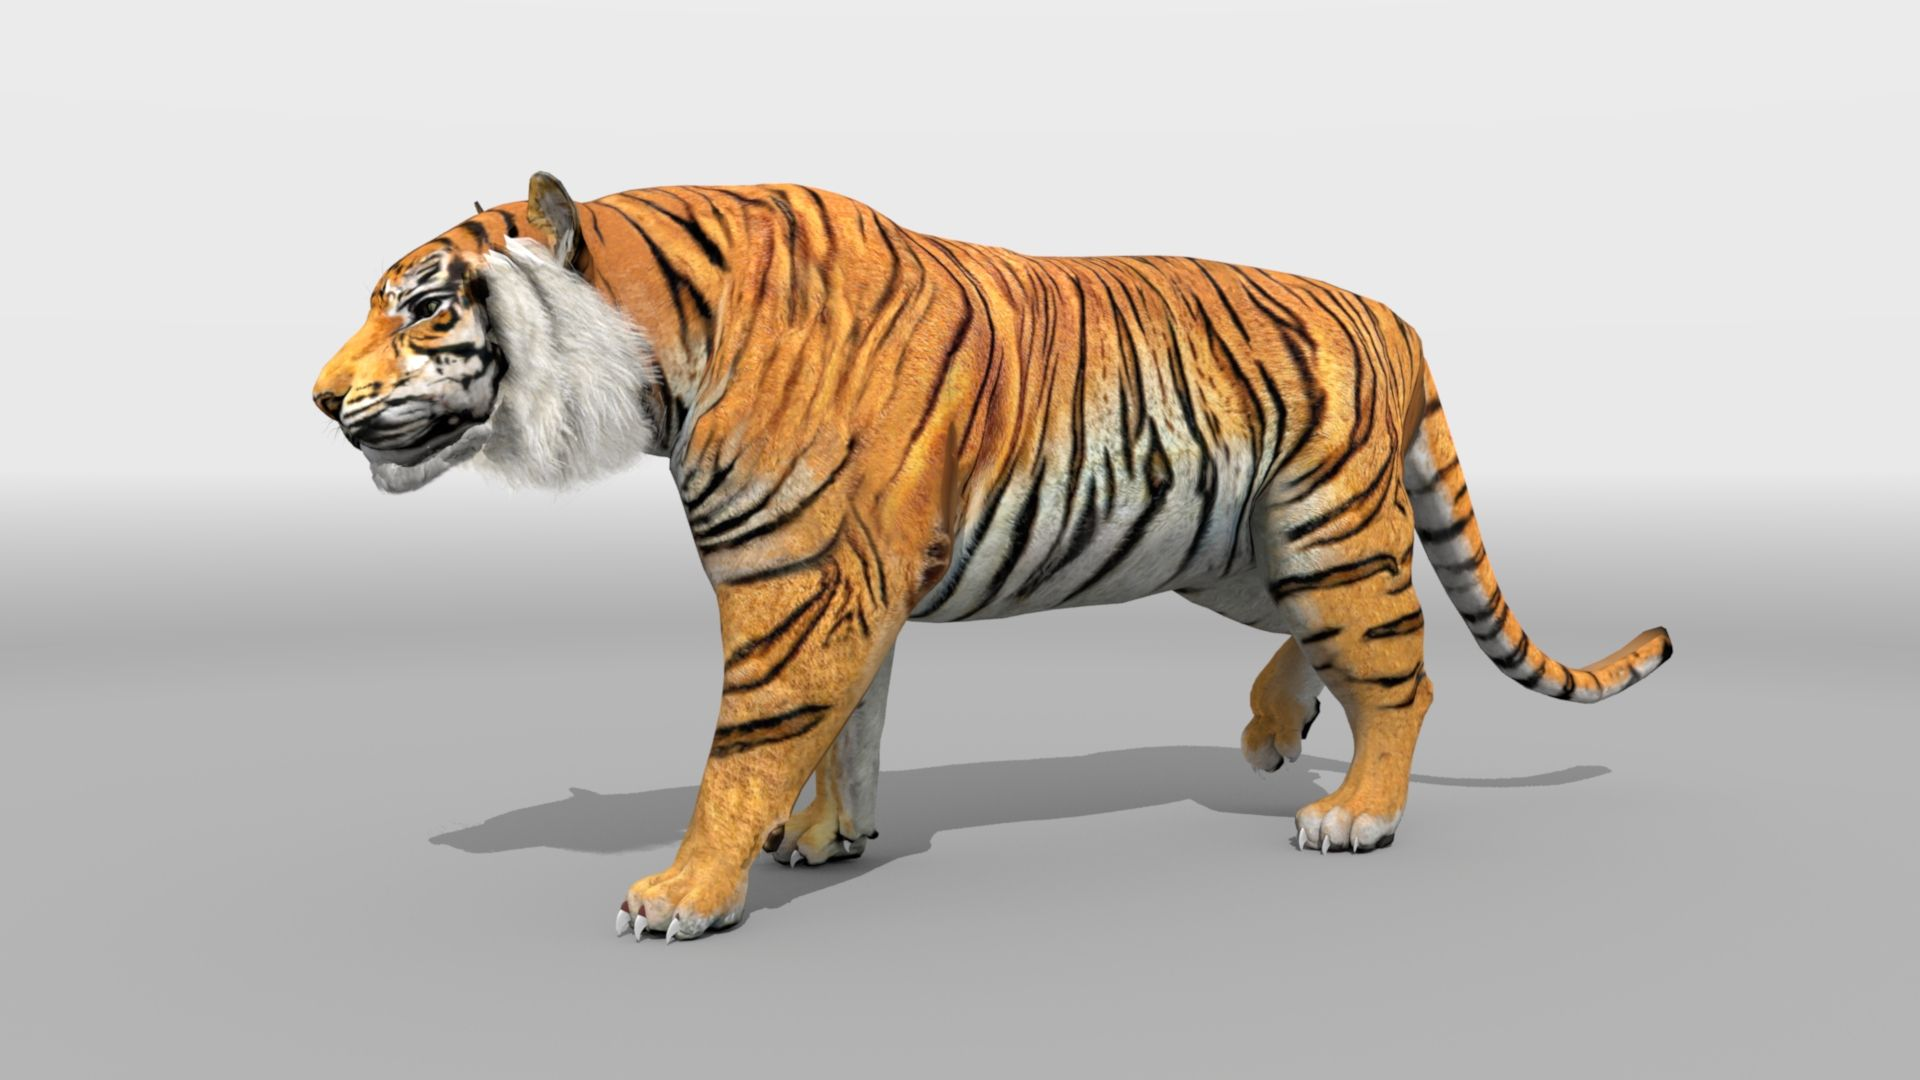 Check out New Video of 3d Animated Tiger by Oceans